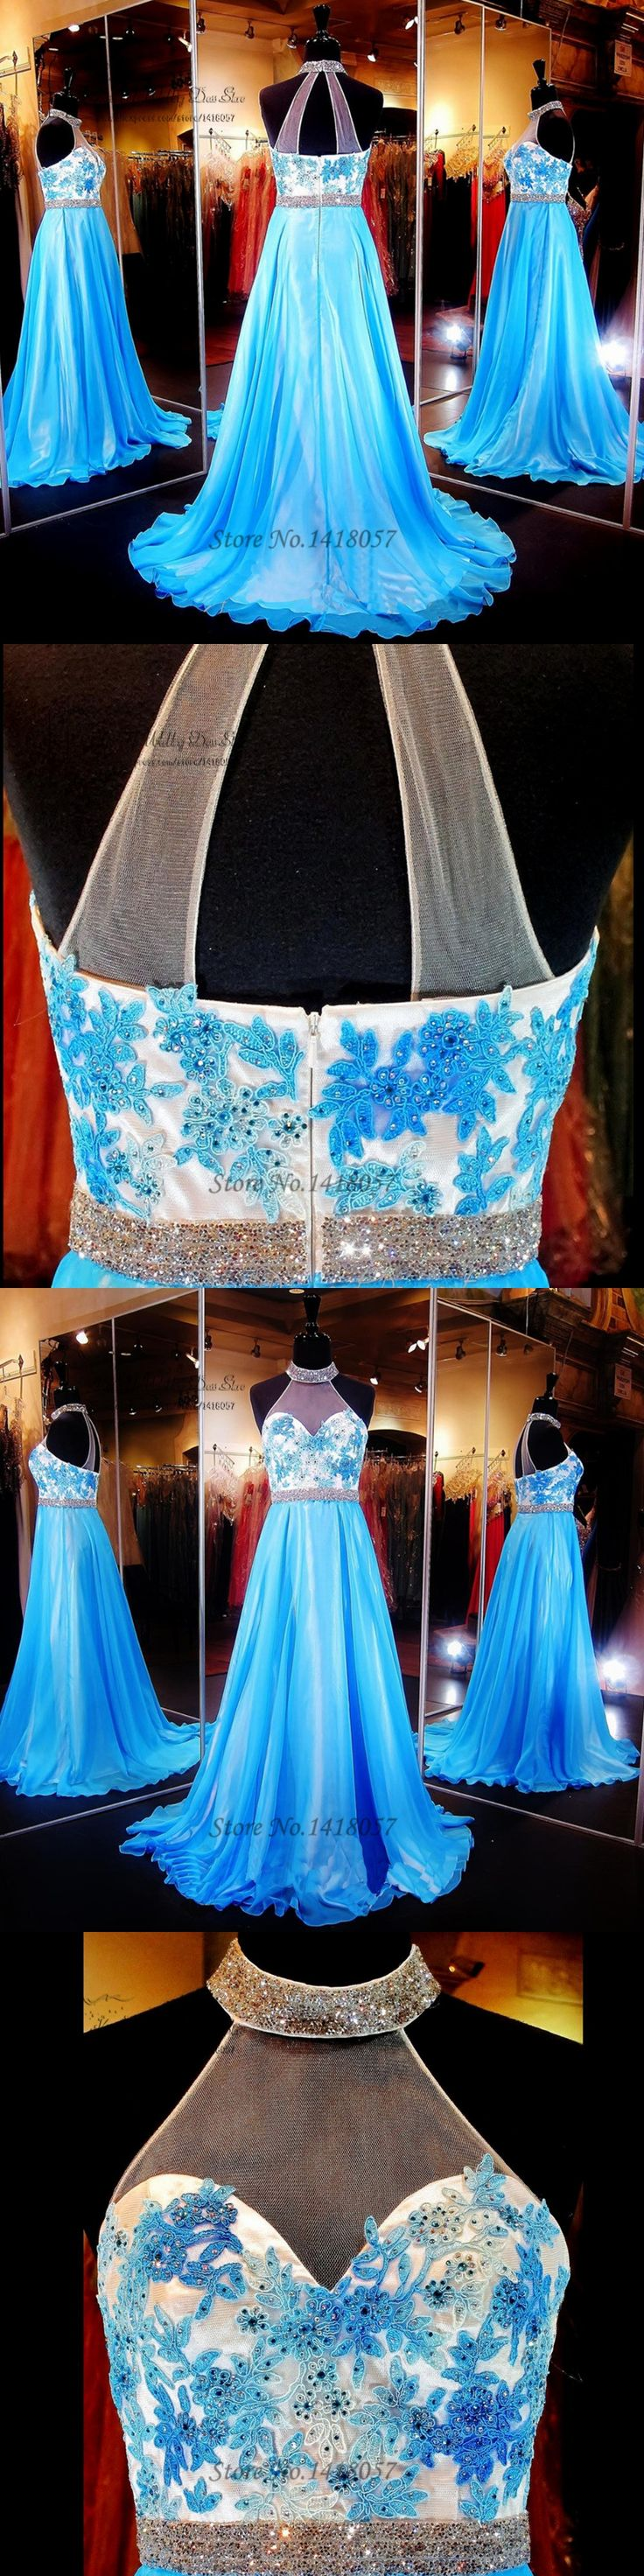 Vestido de Formatura Blue Long Prom Dresses 2016 Lace Dress for Graduation Vestidos de Graduacion Belt Rhinestones Party Dress